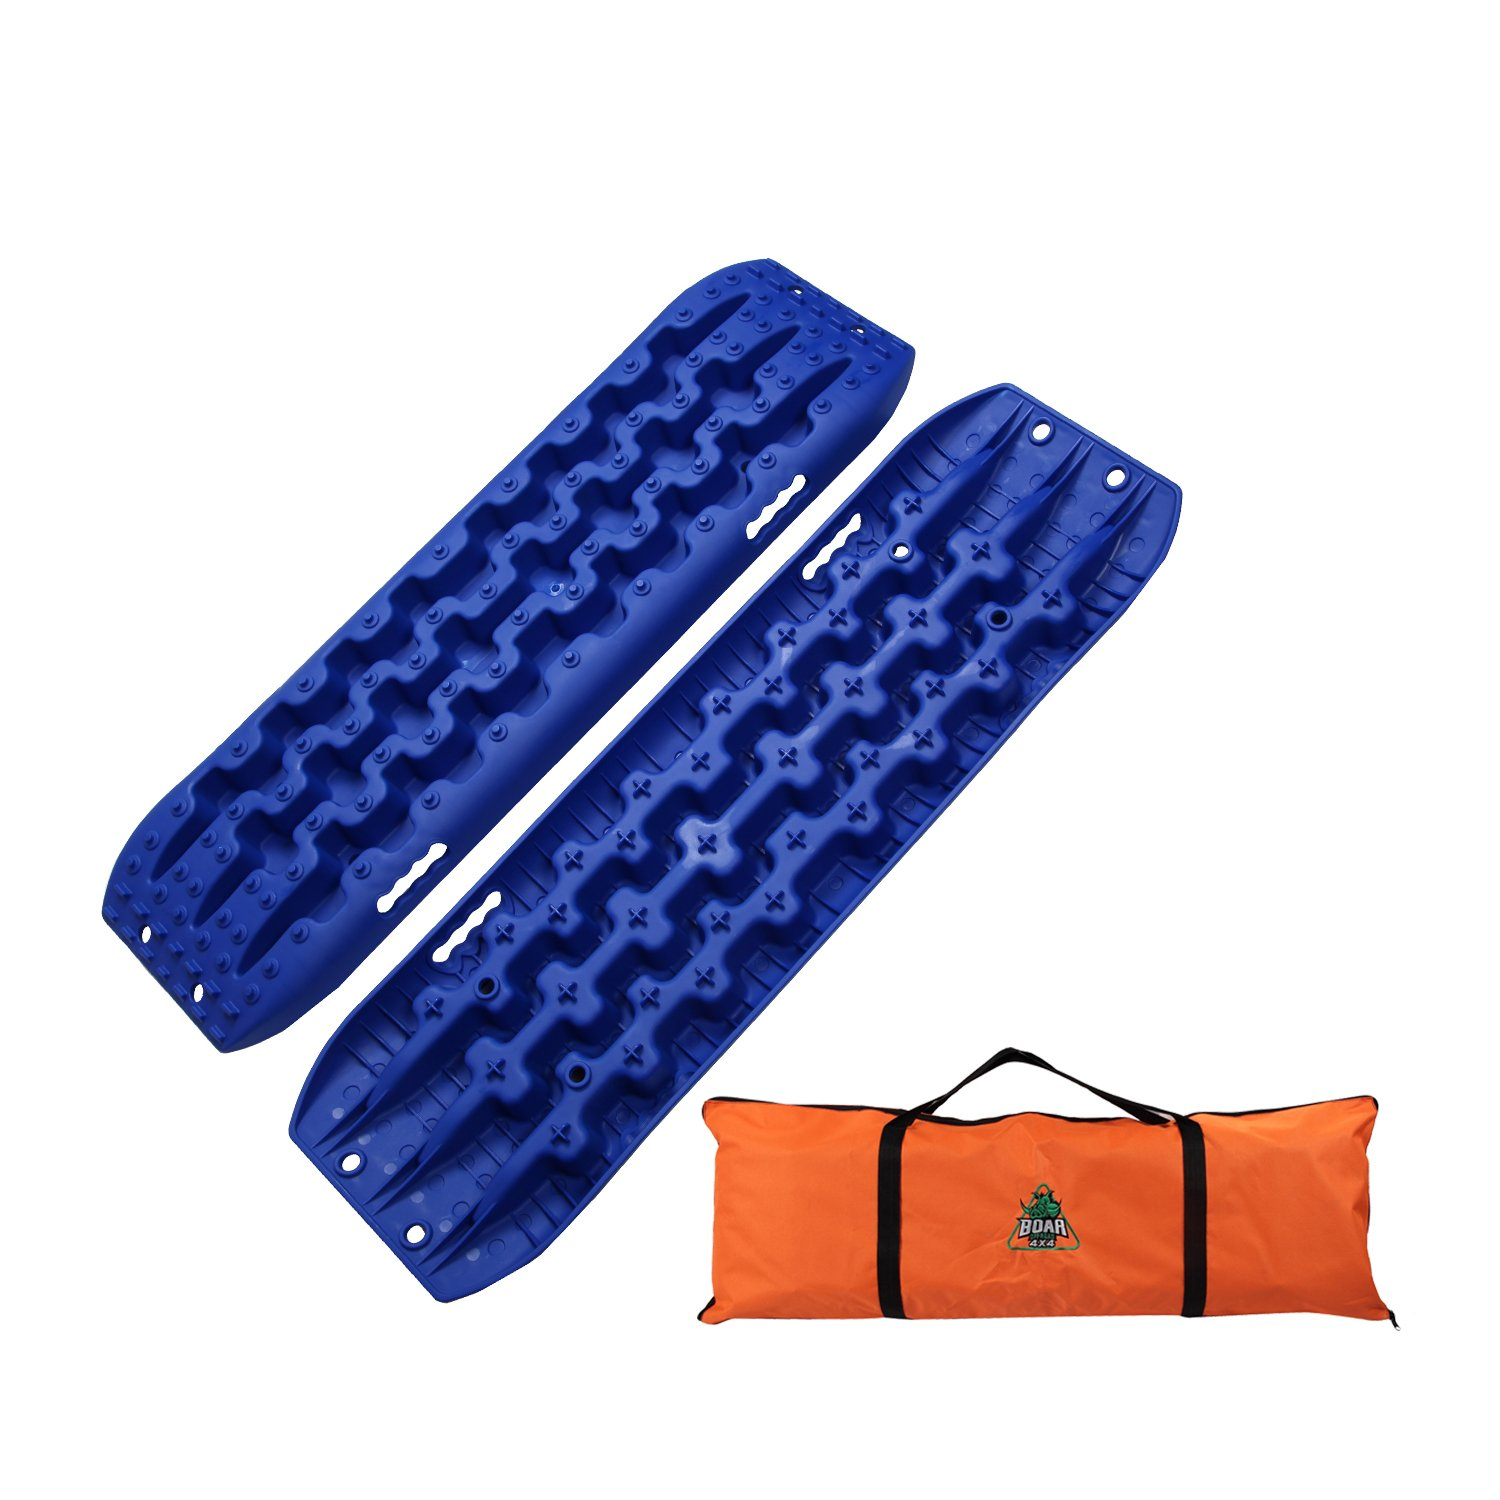 OFFROAD BOAR Recovey Tracks Sand Mud Snow Traction Boards(2Pack) (Orange) BOAR OFFROAD